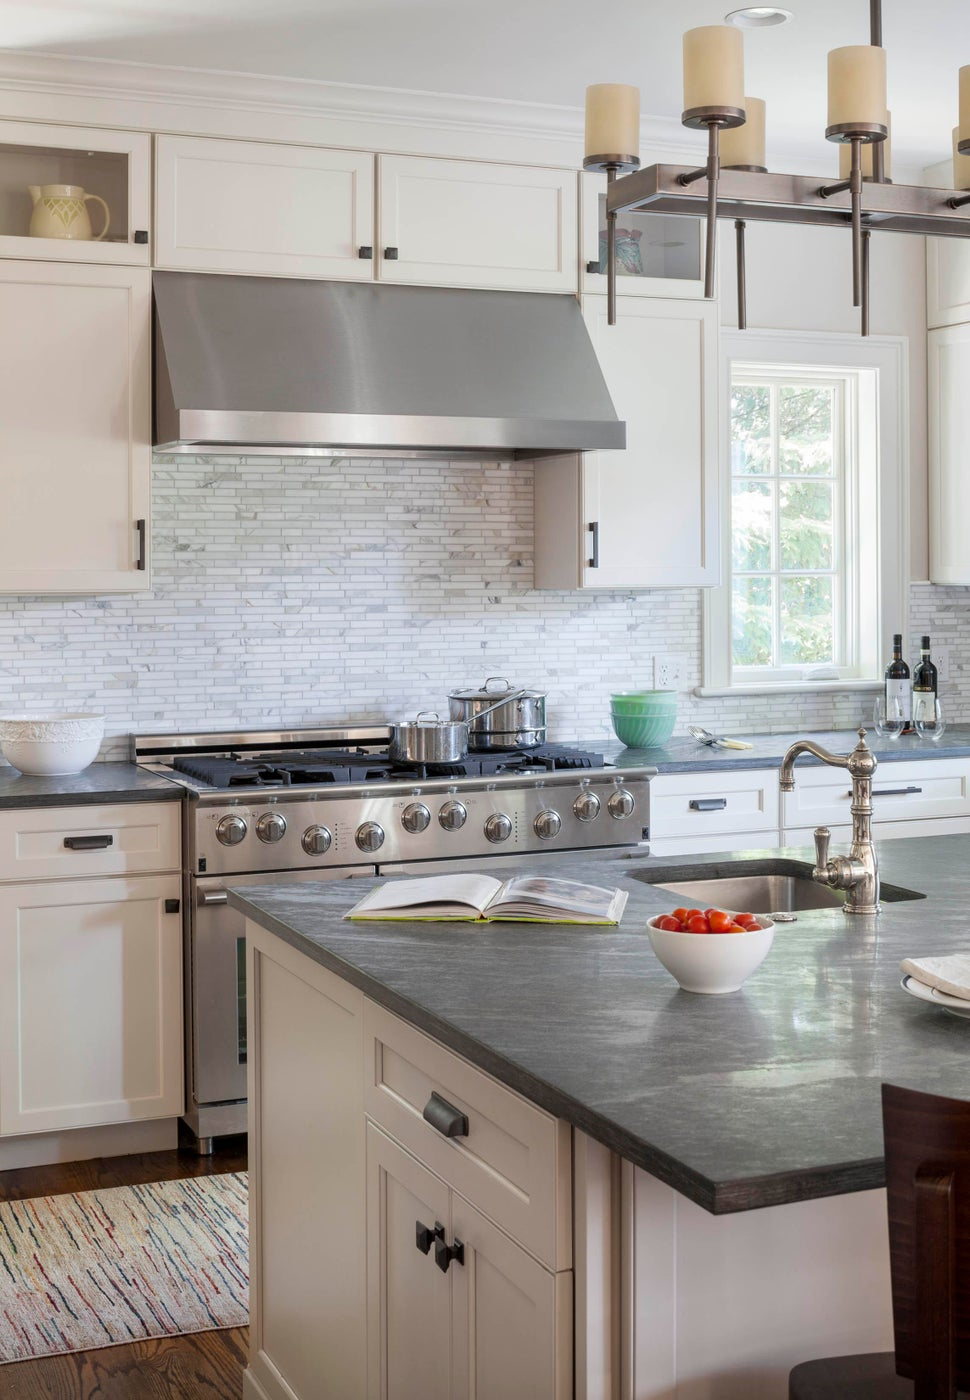 A steel range hood is softened by surrounding cabinets and textured backsplash